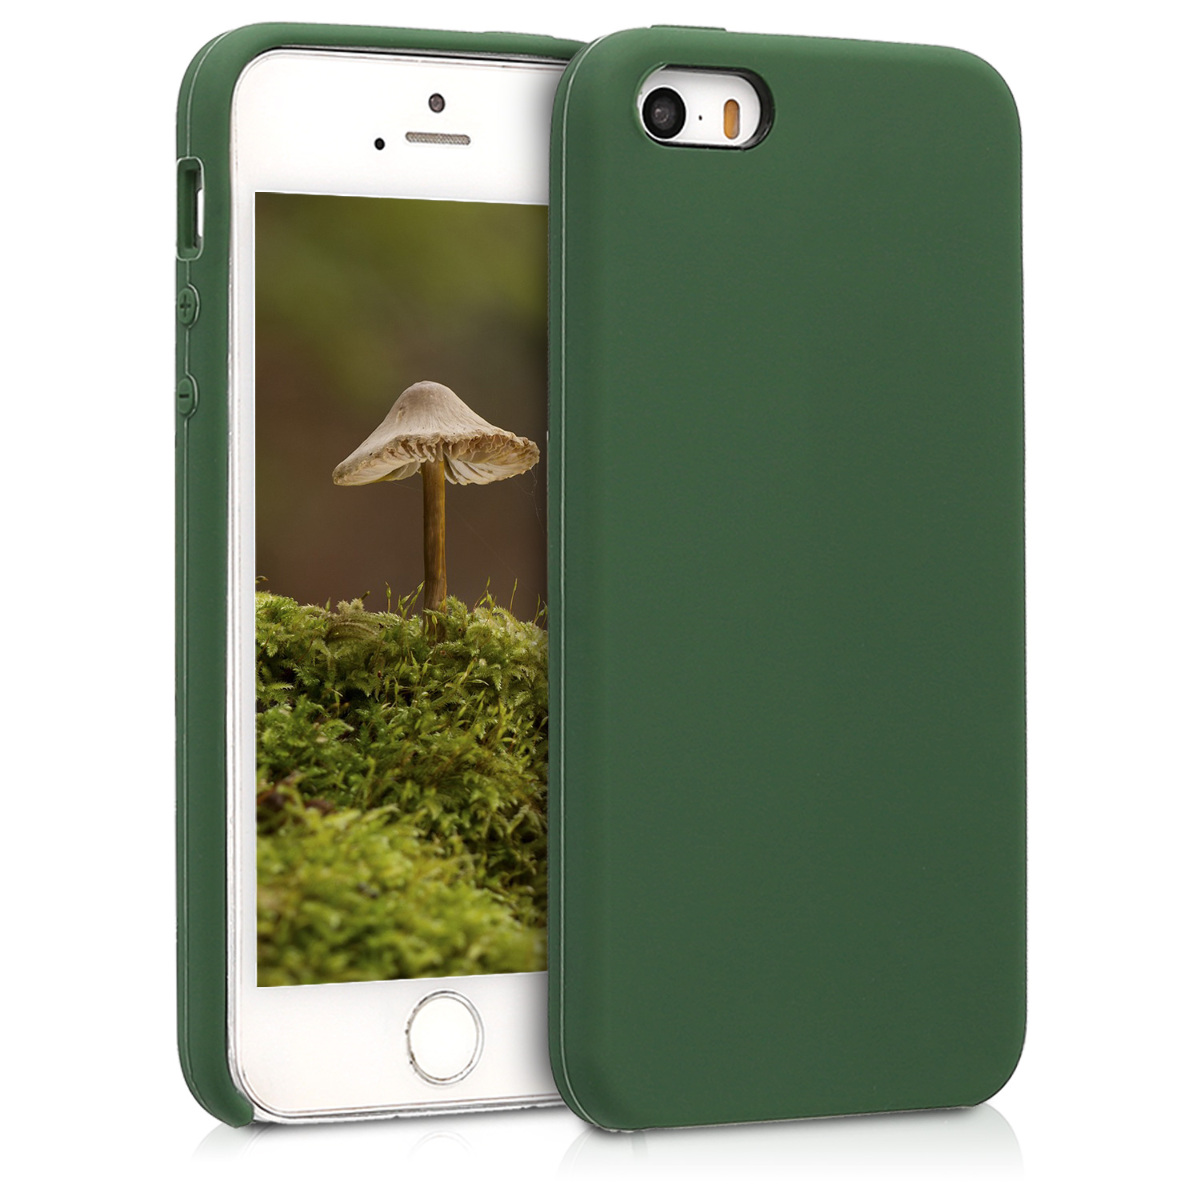 KW Θήκη Σιλικόνης iPhone SE / 5 / 5S - Soft Flexible Rubber Protective Cover - Dark Green - (42766.80)